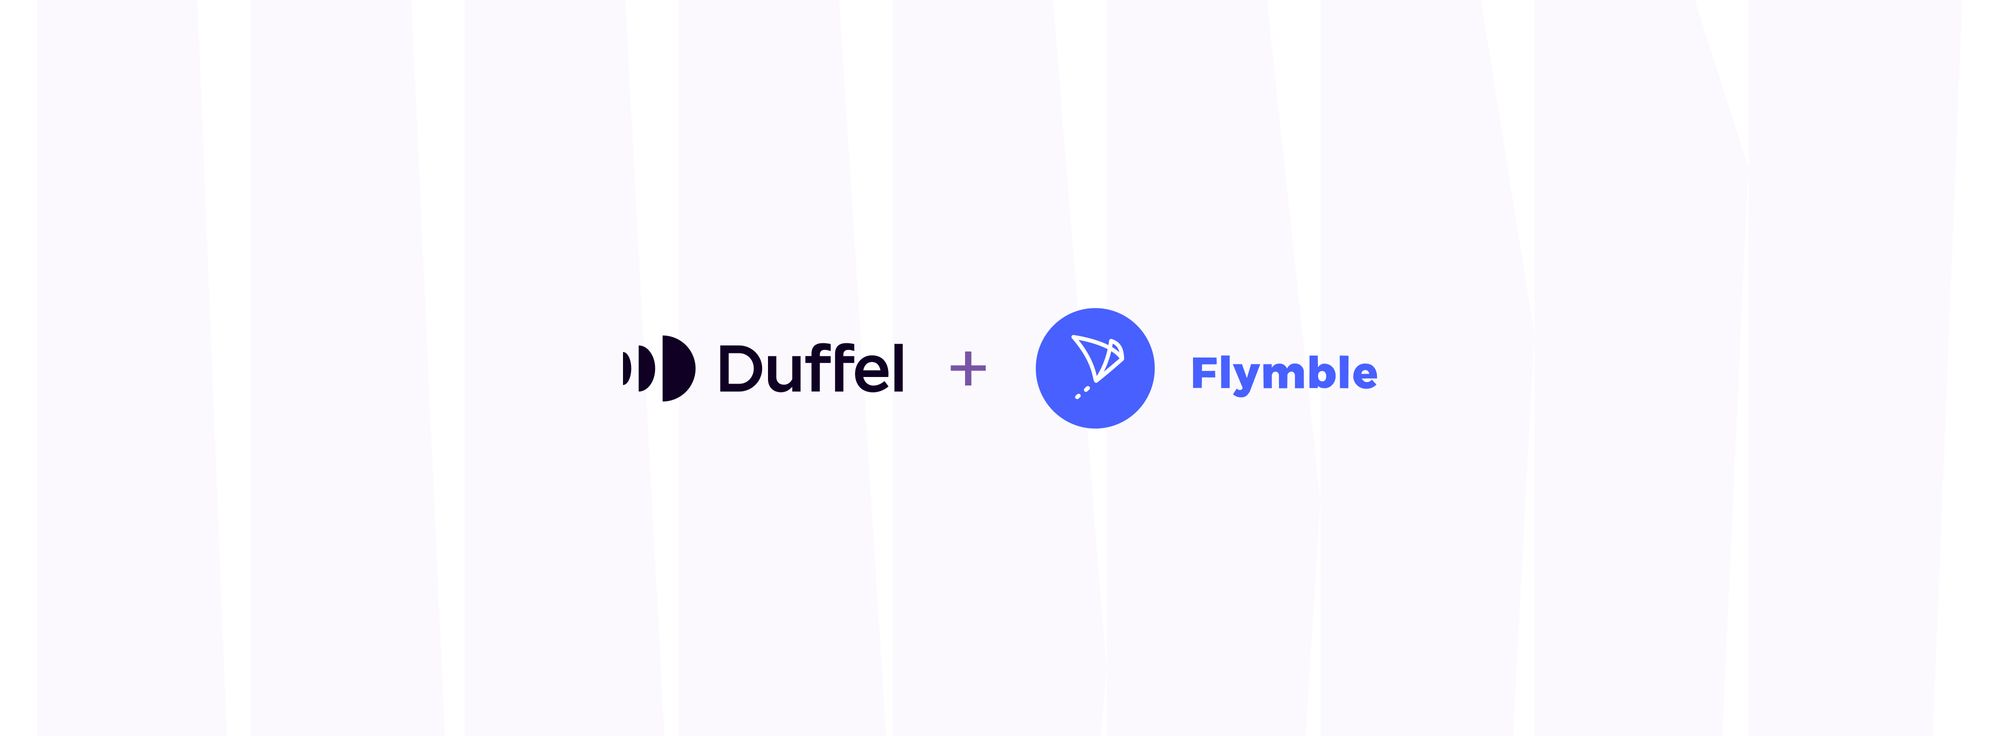 Flymble brings 'buy now pay later' to the masses with Duffel